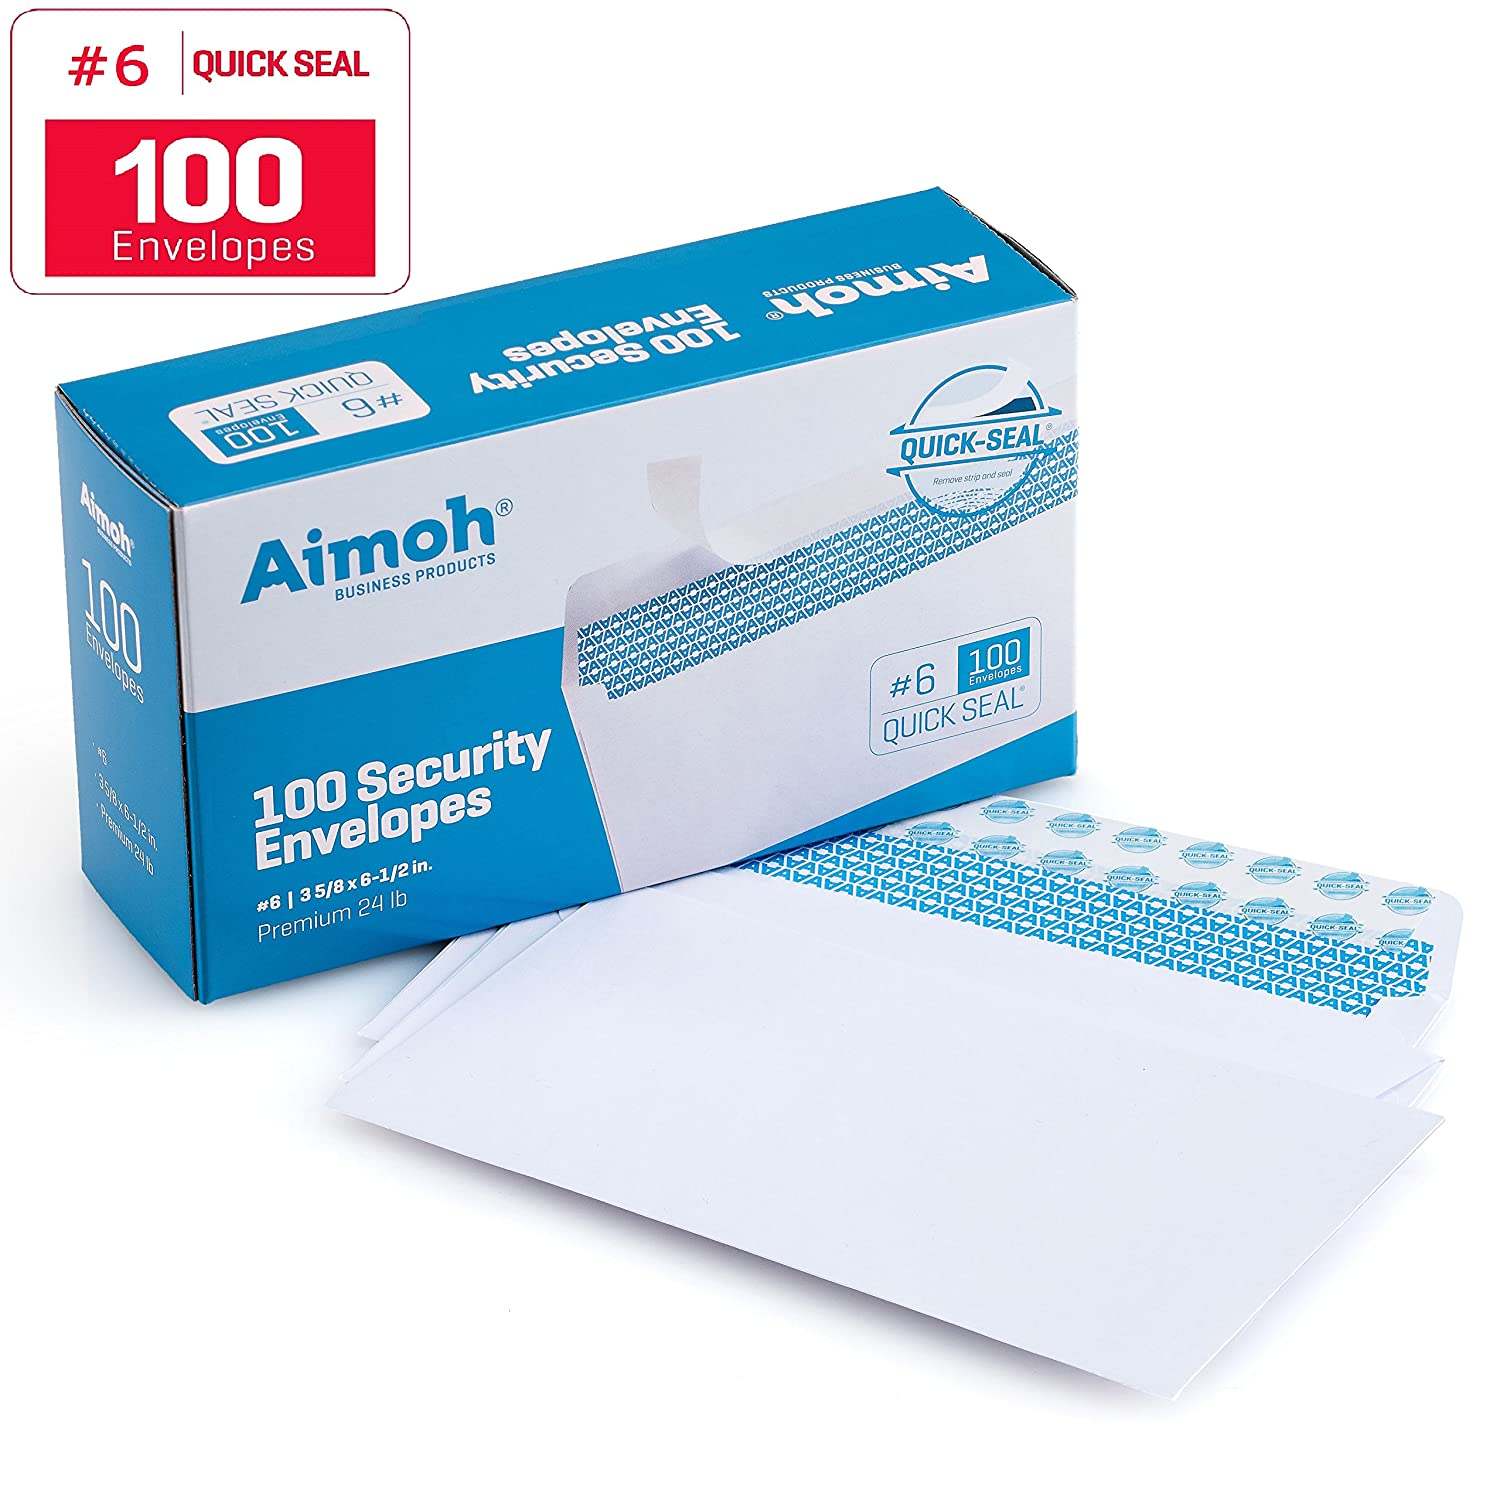 #6 3/4 Security Tinted Self-Seal Envelopes - No Window, Size 3-5/8 X 6-1/2 inches - White - 24 LB - 100 Count (34600) Aimoh